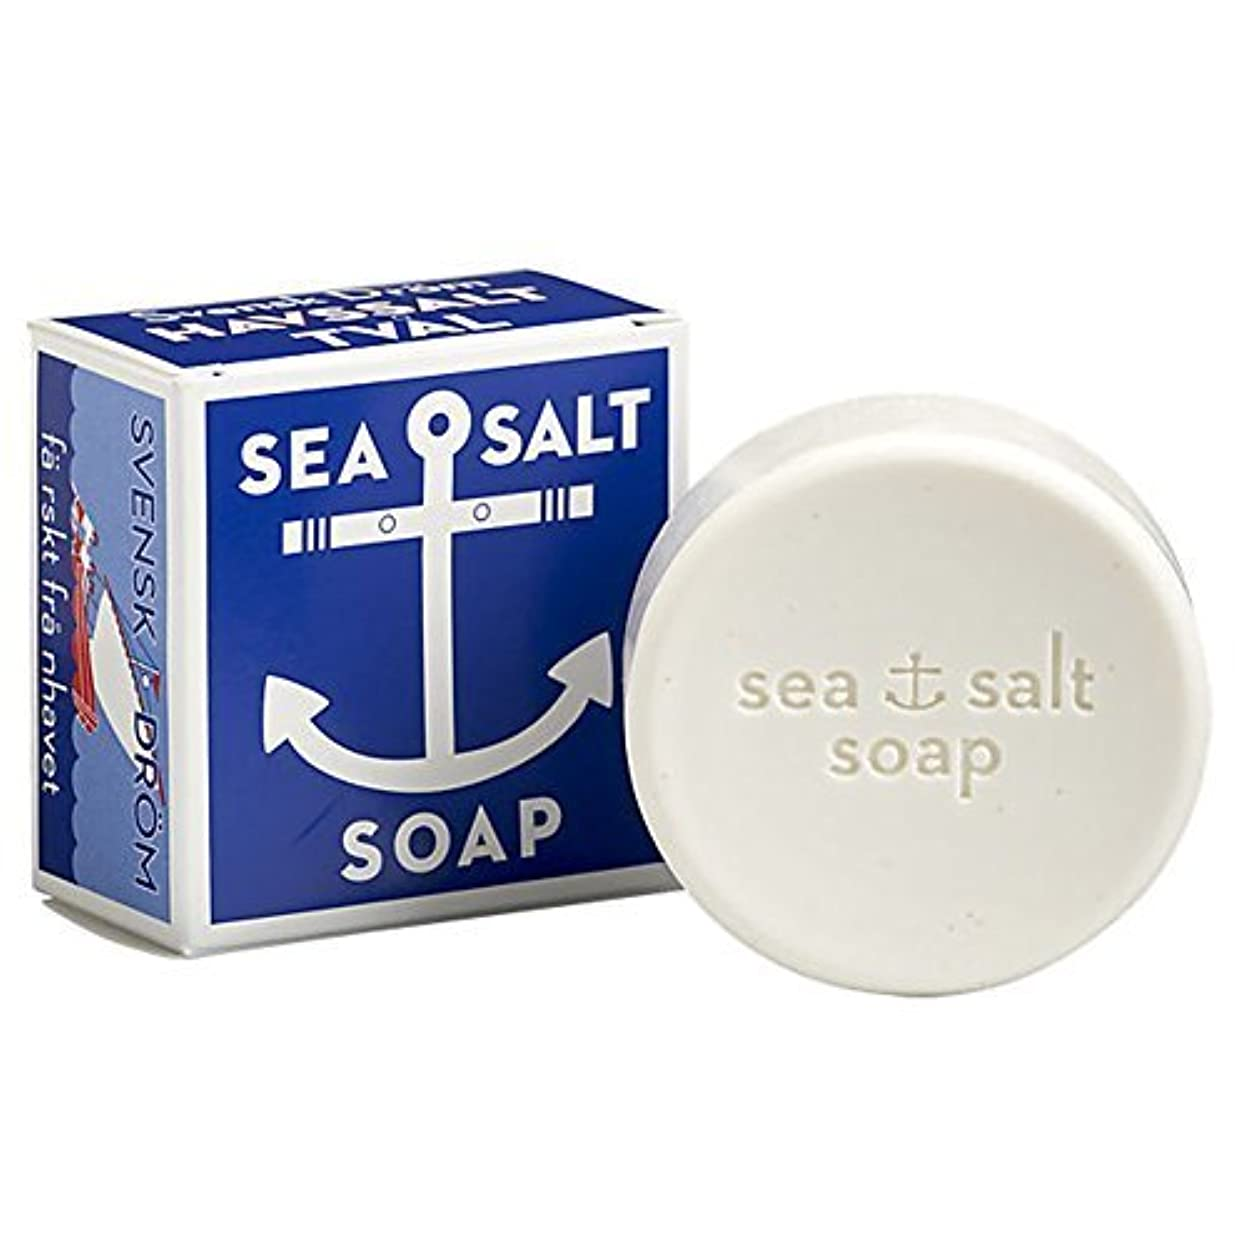 モニターミトンピクニックSwedish Dream Sea Salt Invigorating Bath Soap - One 4.3 oz Bar by Swedish Dream [並行輸入品]